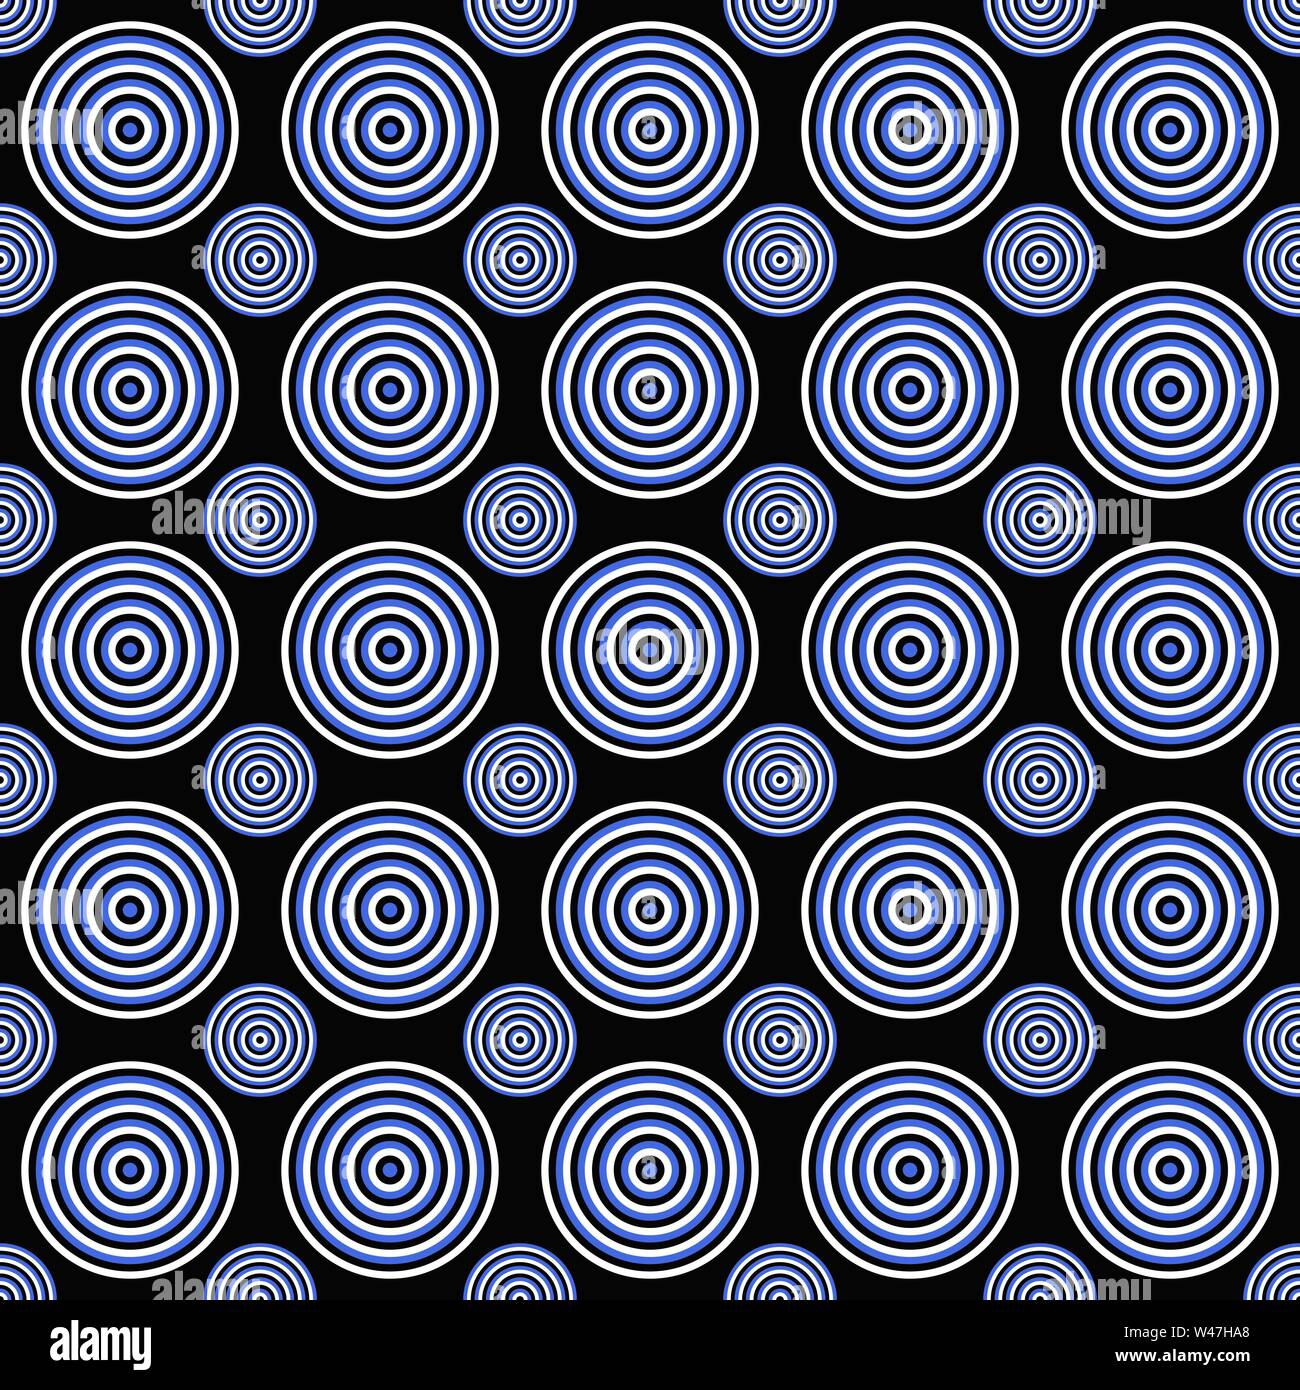 Abstract geometrical seamless pattern - vector circle design background - Stock Image